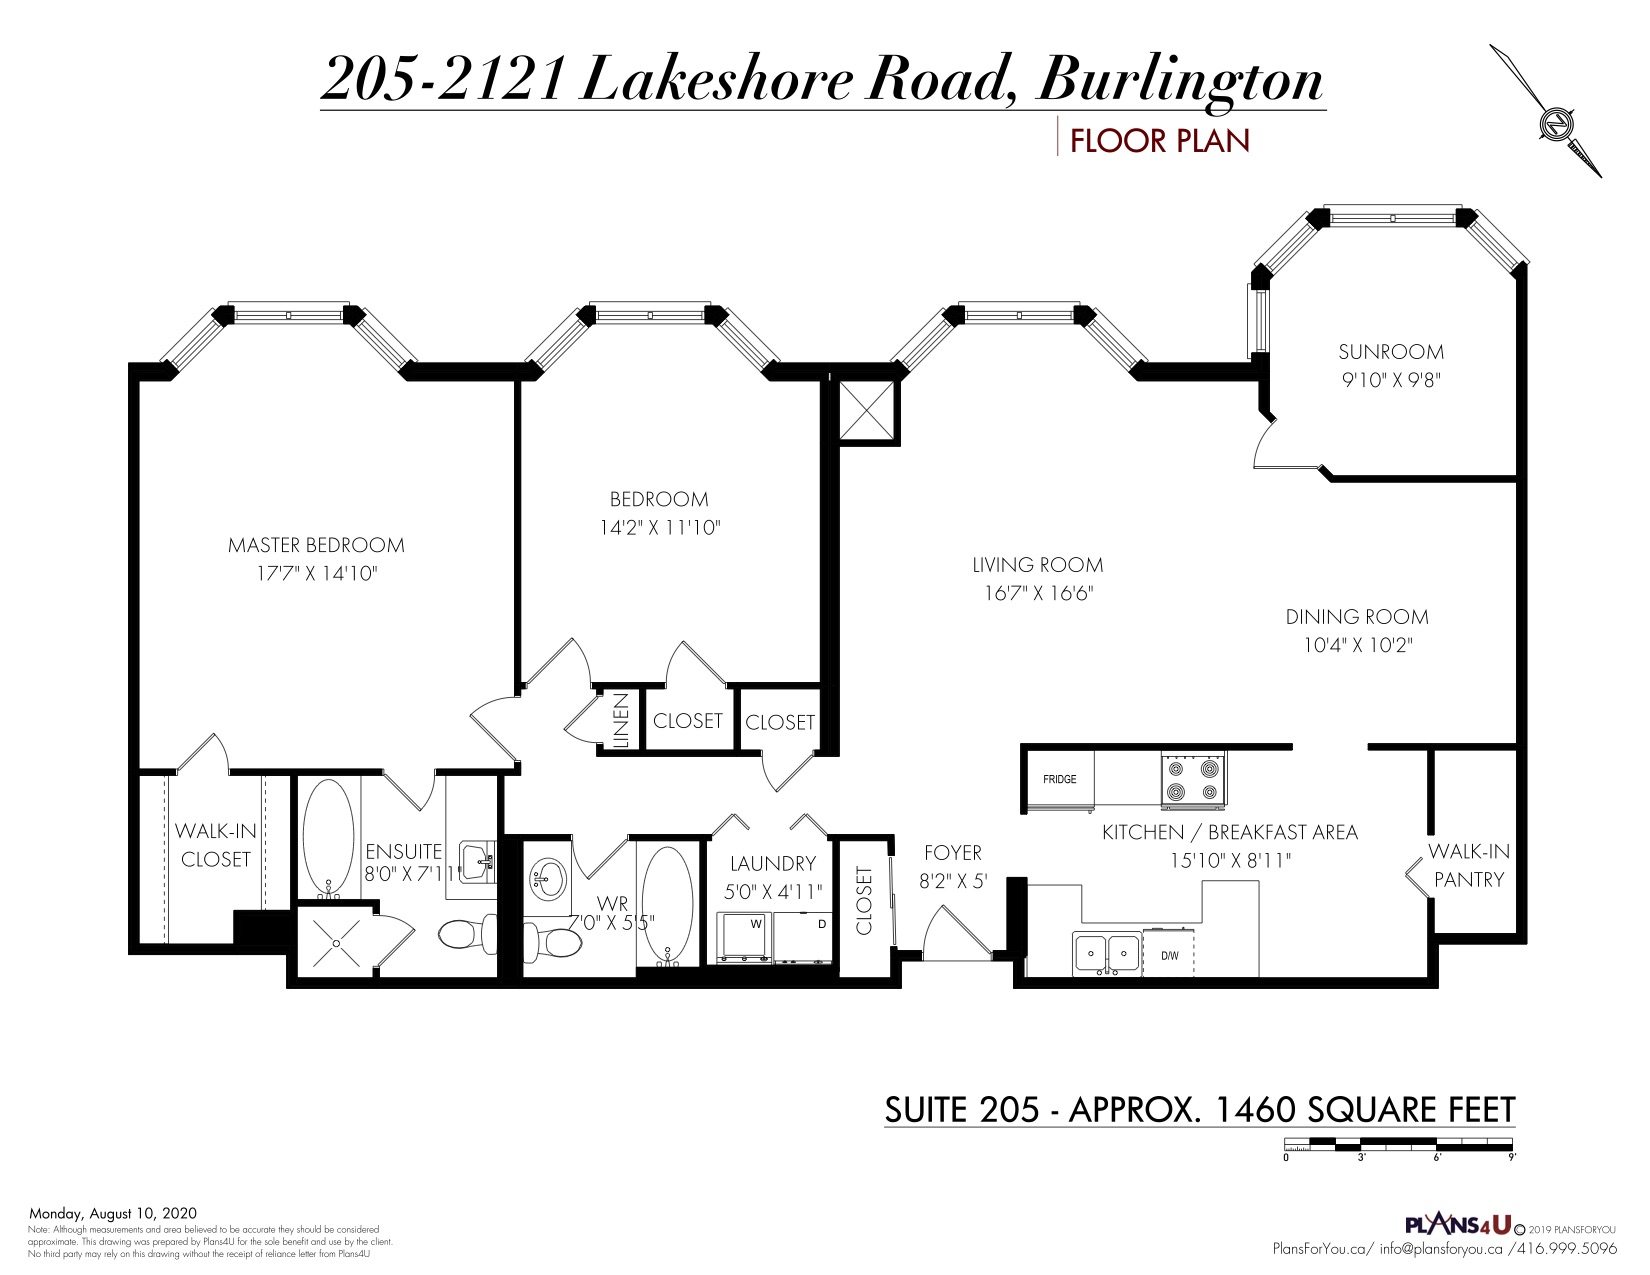 205-2121 Lakeshore Rd. Floor Plan